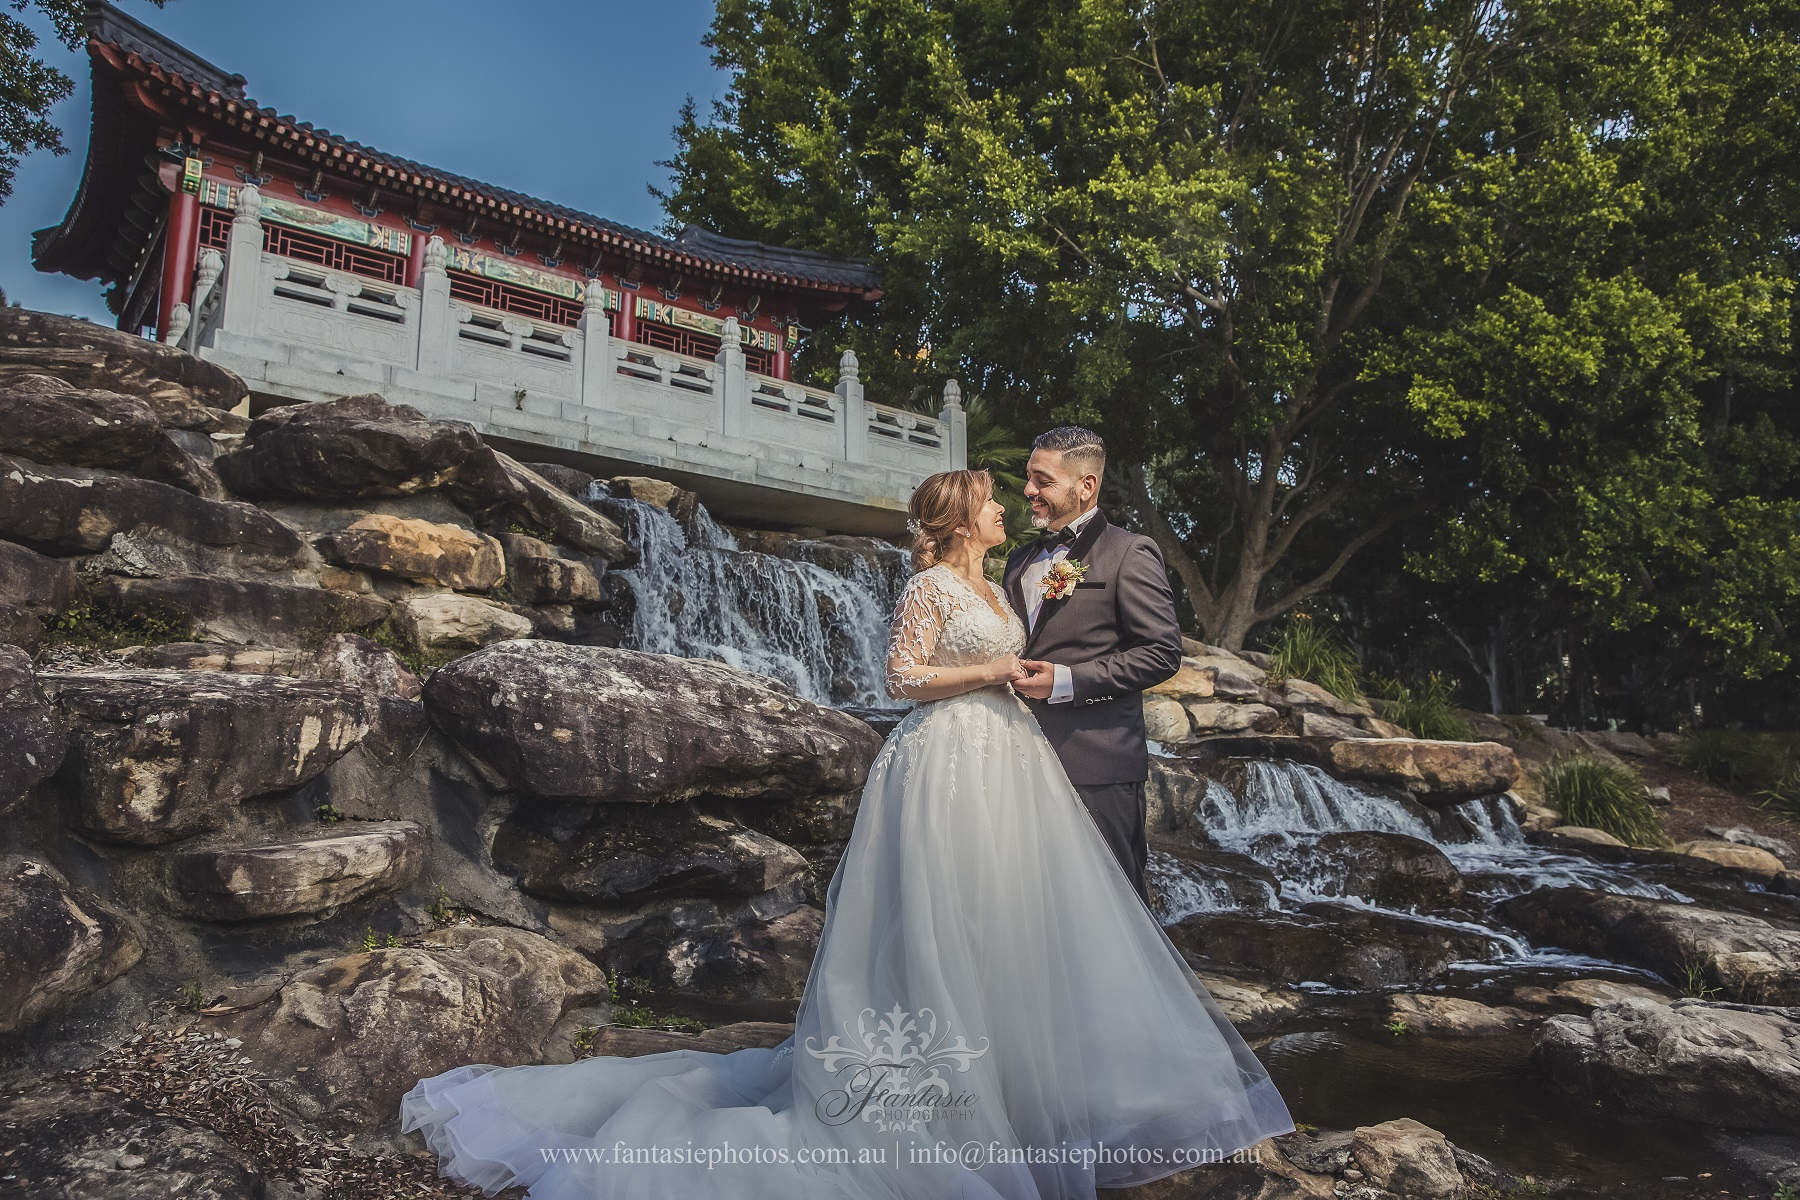 Wedding Photography Nurragingy Reserve Chang Lai Yuan Garden | Fantasie Photography